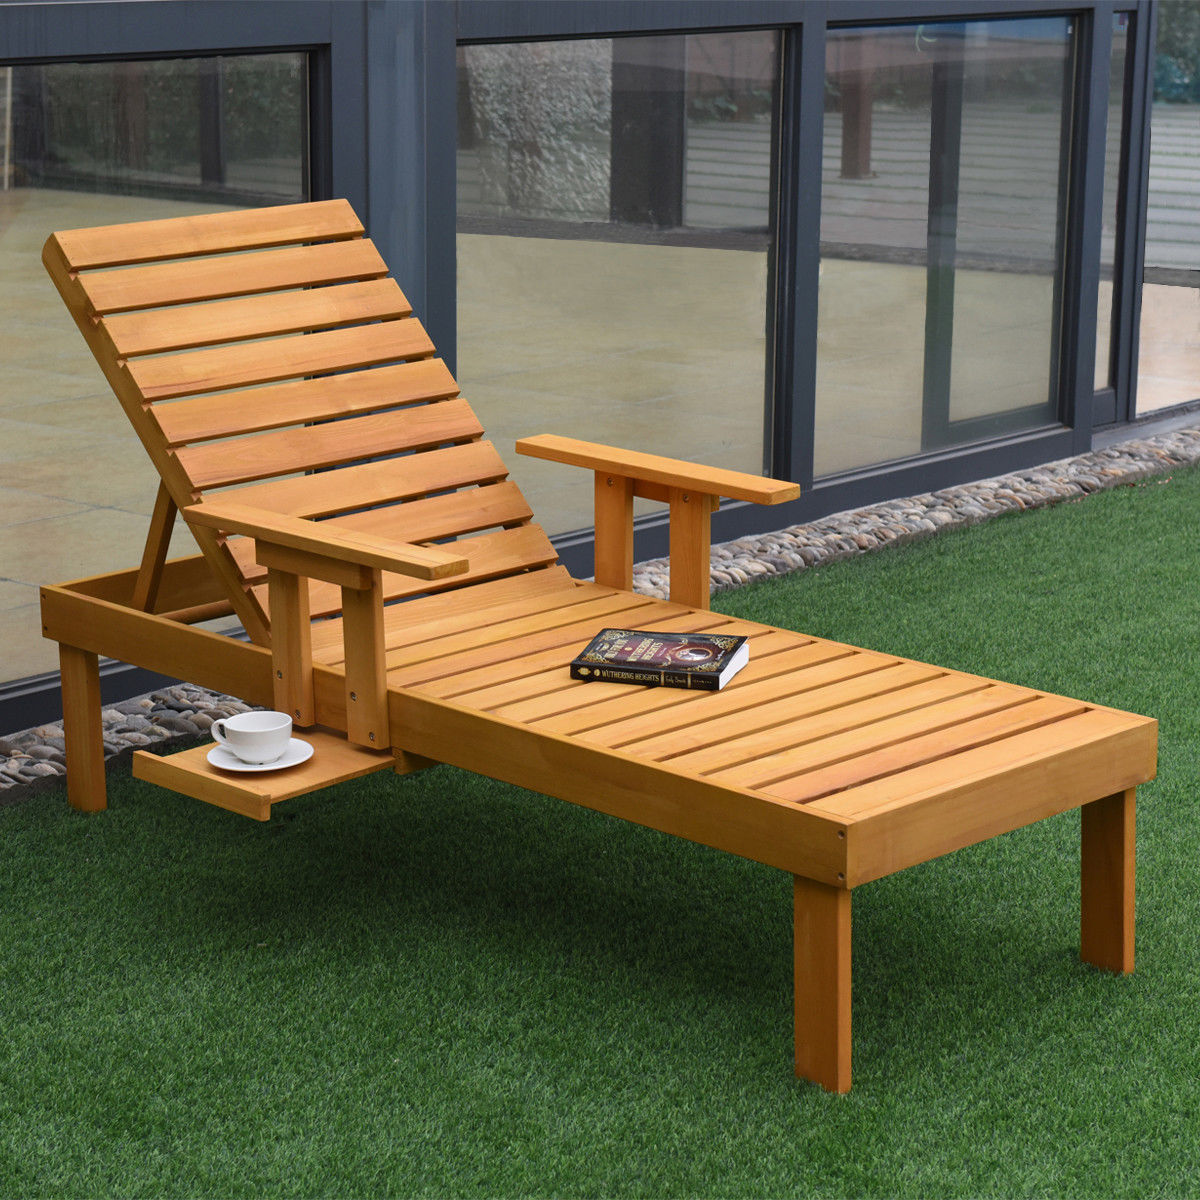 Giantex Patio Chaise Sun Lounger Outdoor Furniture Garden Side Tray Deck Chair Modern Wood Beach Lounge Chair HW56771